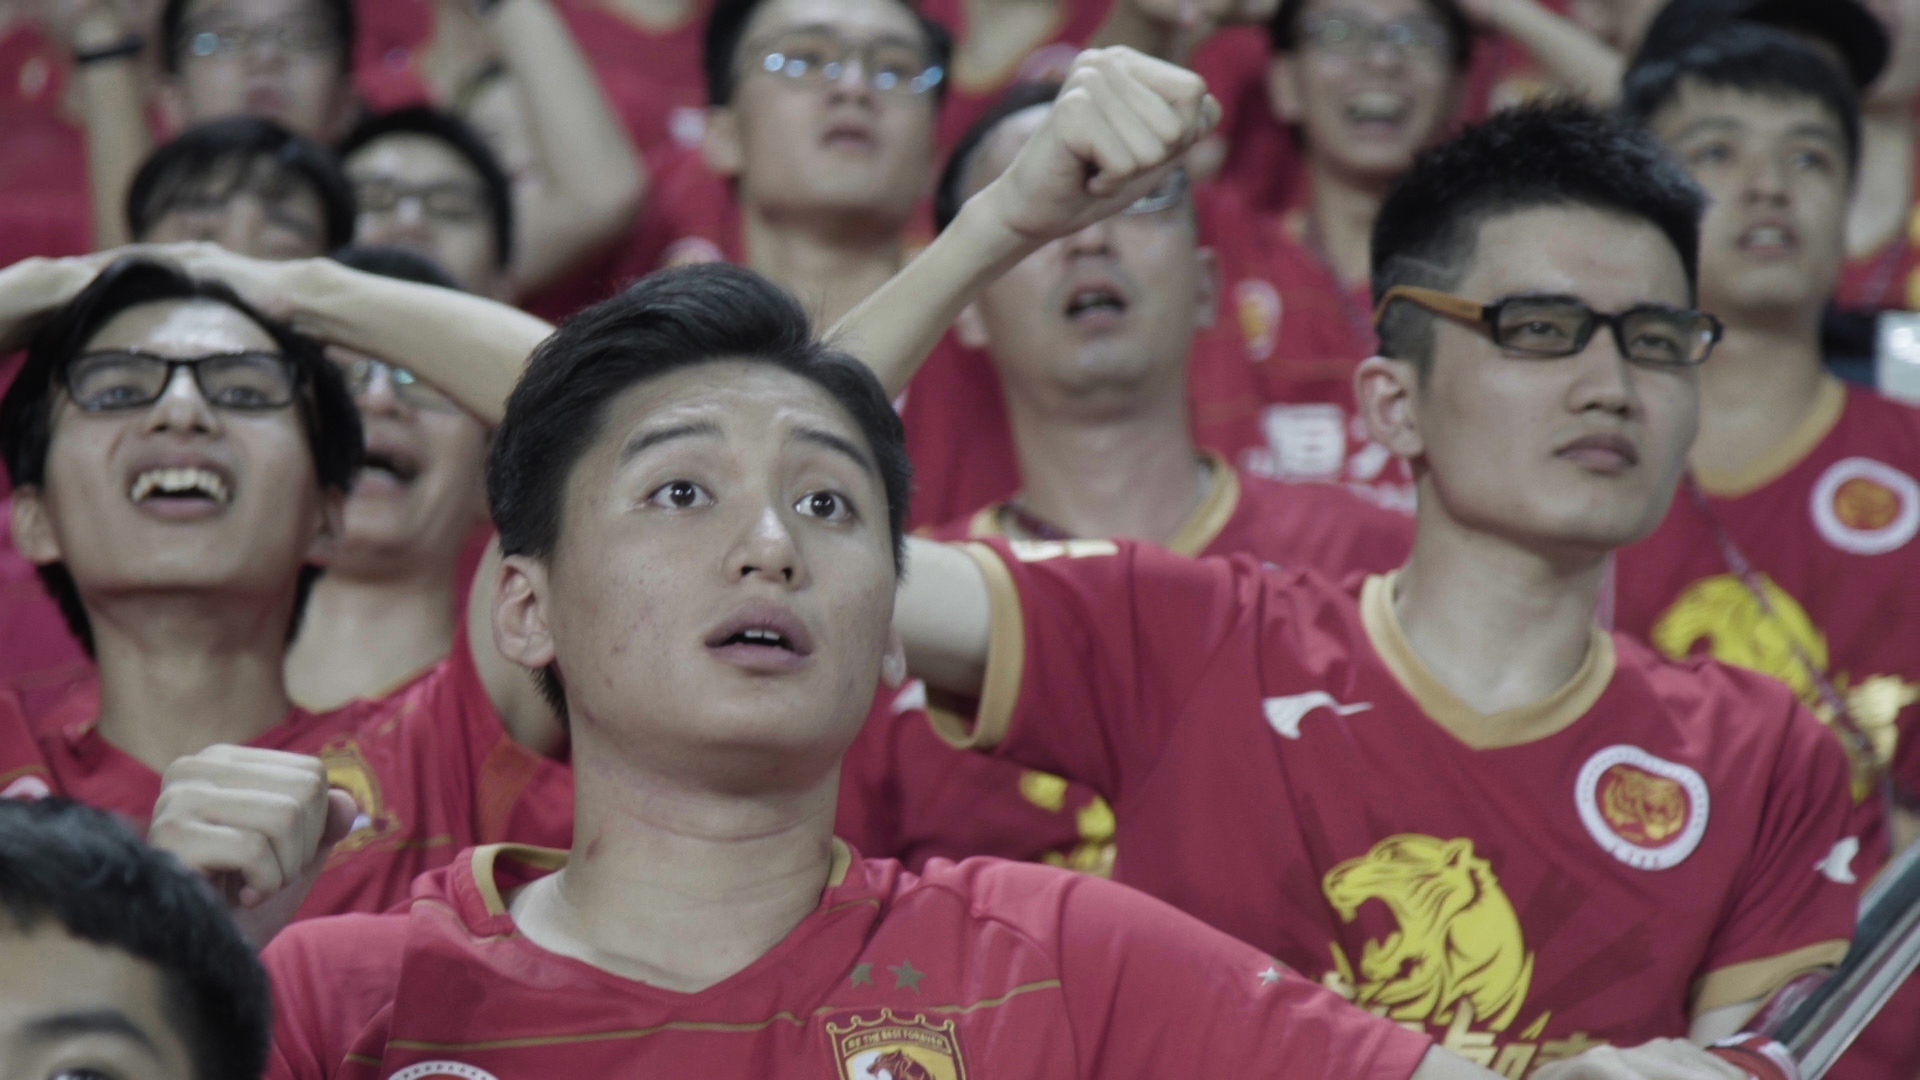 Fans of Guangzhou Evergrande Taobao Football Club cheer on their team at a football match.